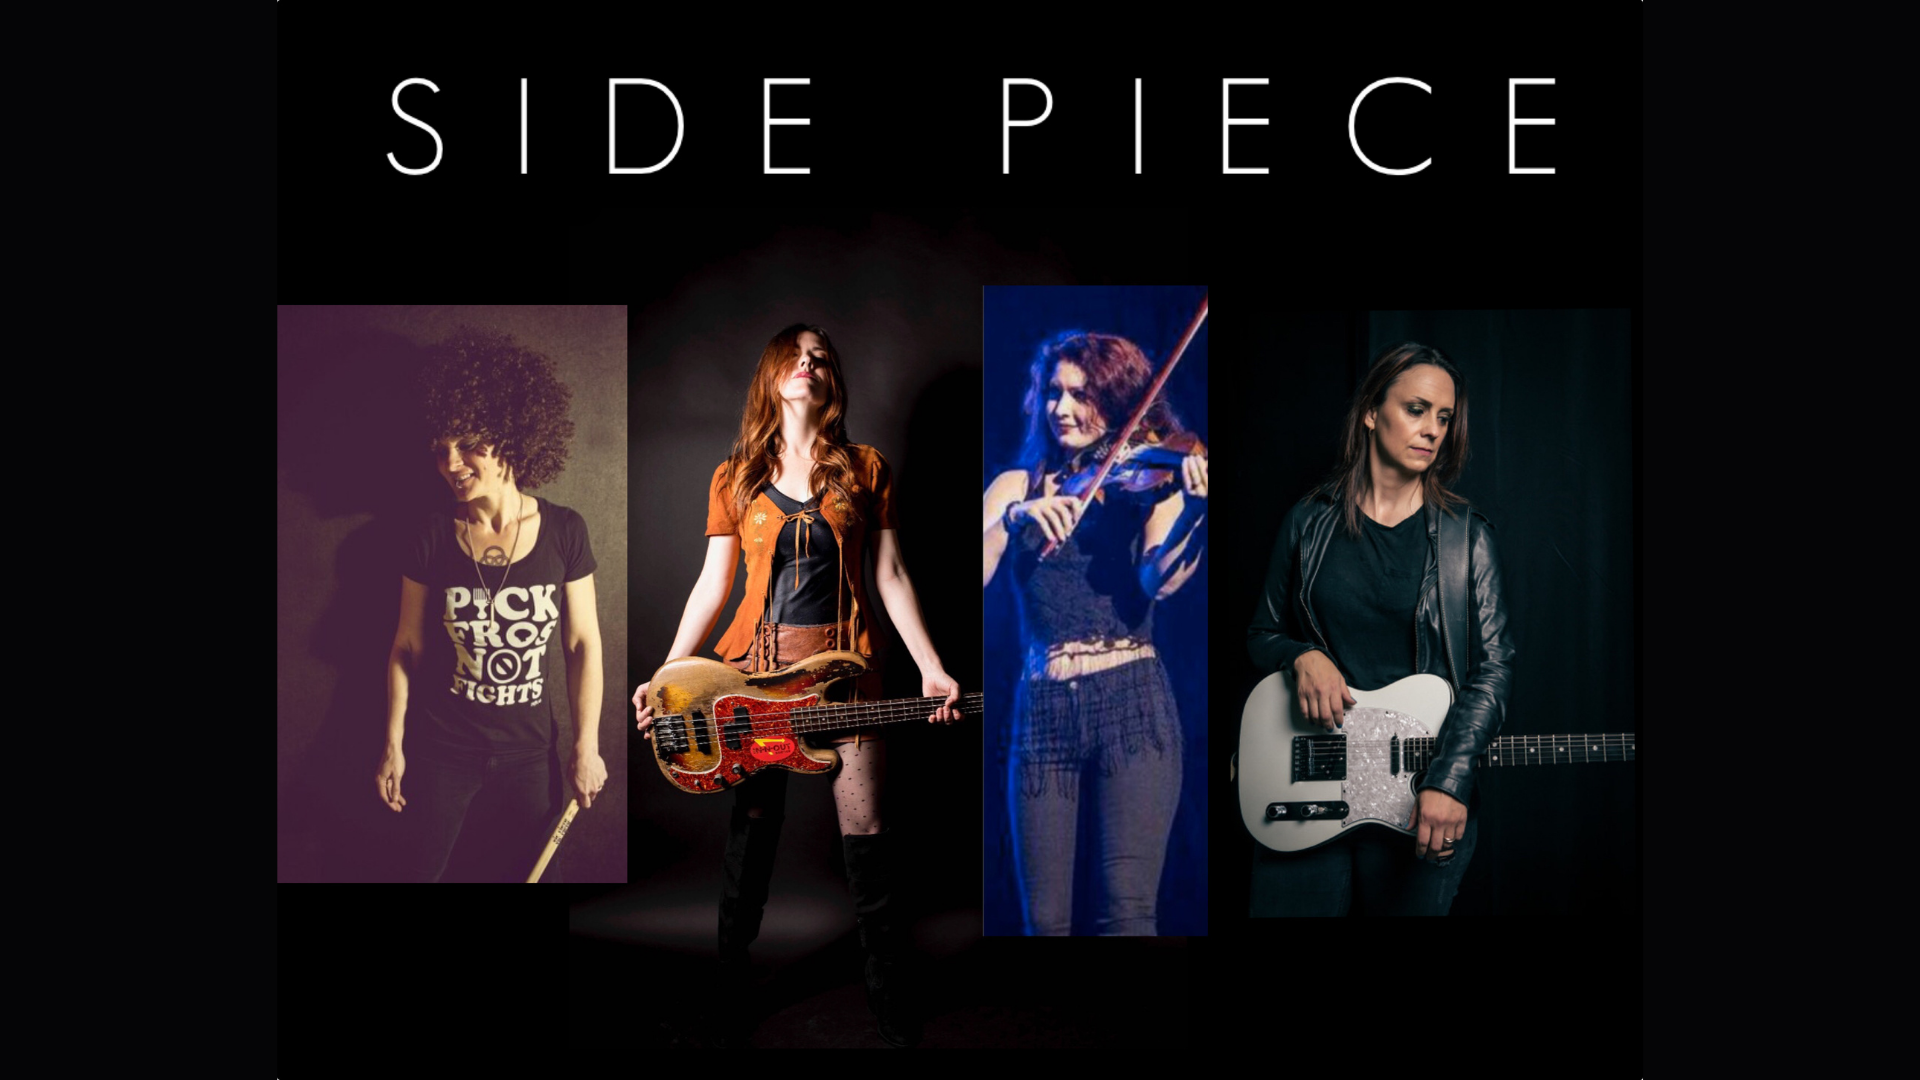 Promo image of Sidepiece on Skydeck